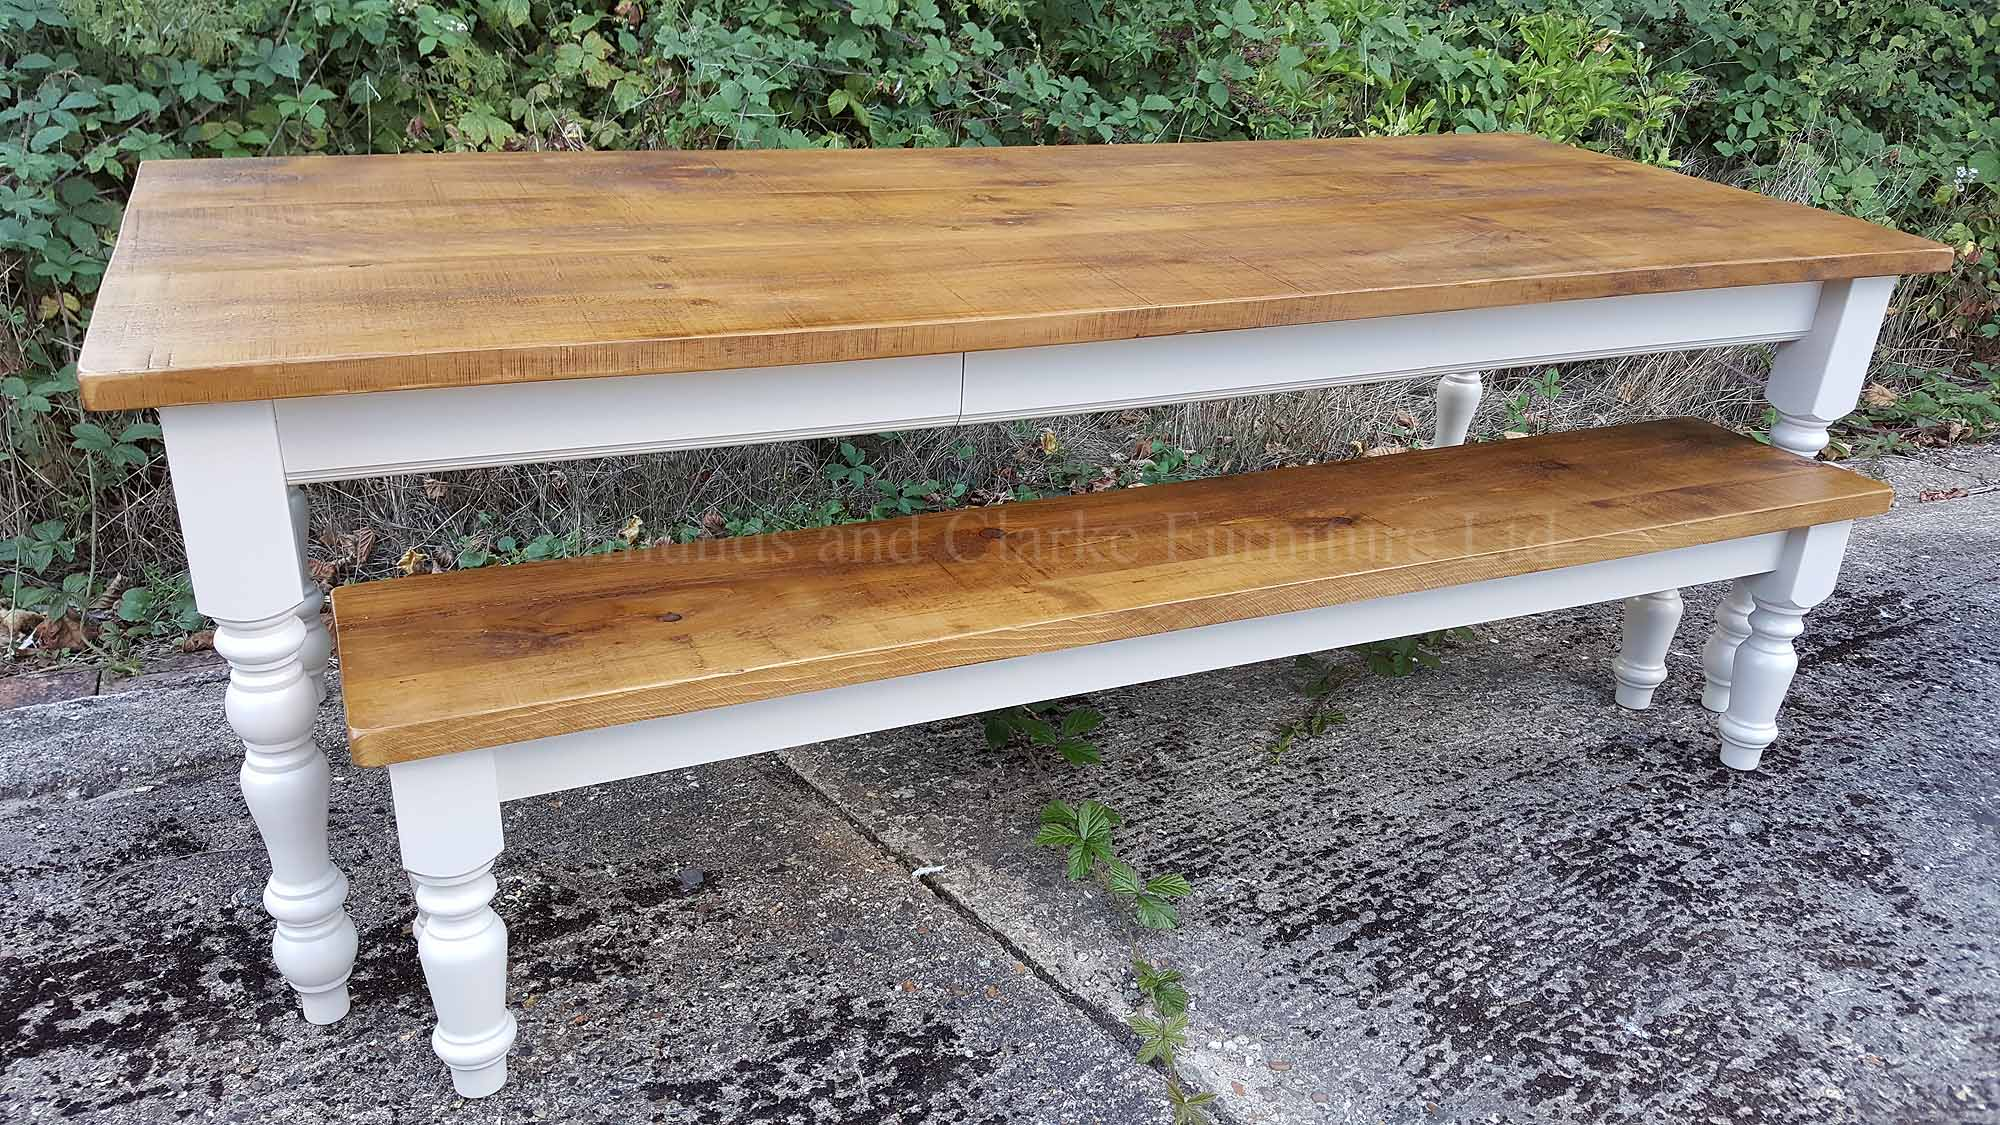 Edmunds painted farmhouse table with rough sawn pine top, painted legs